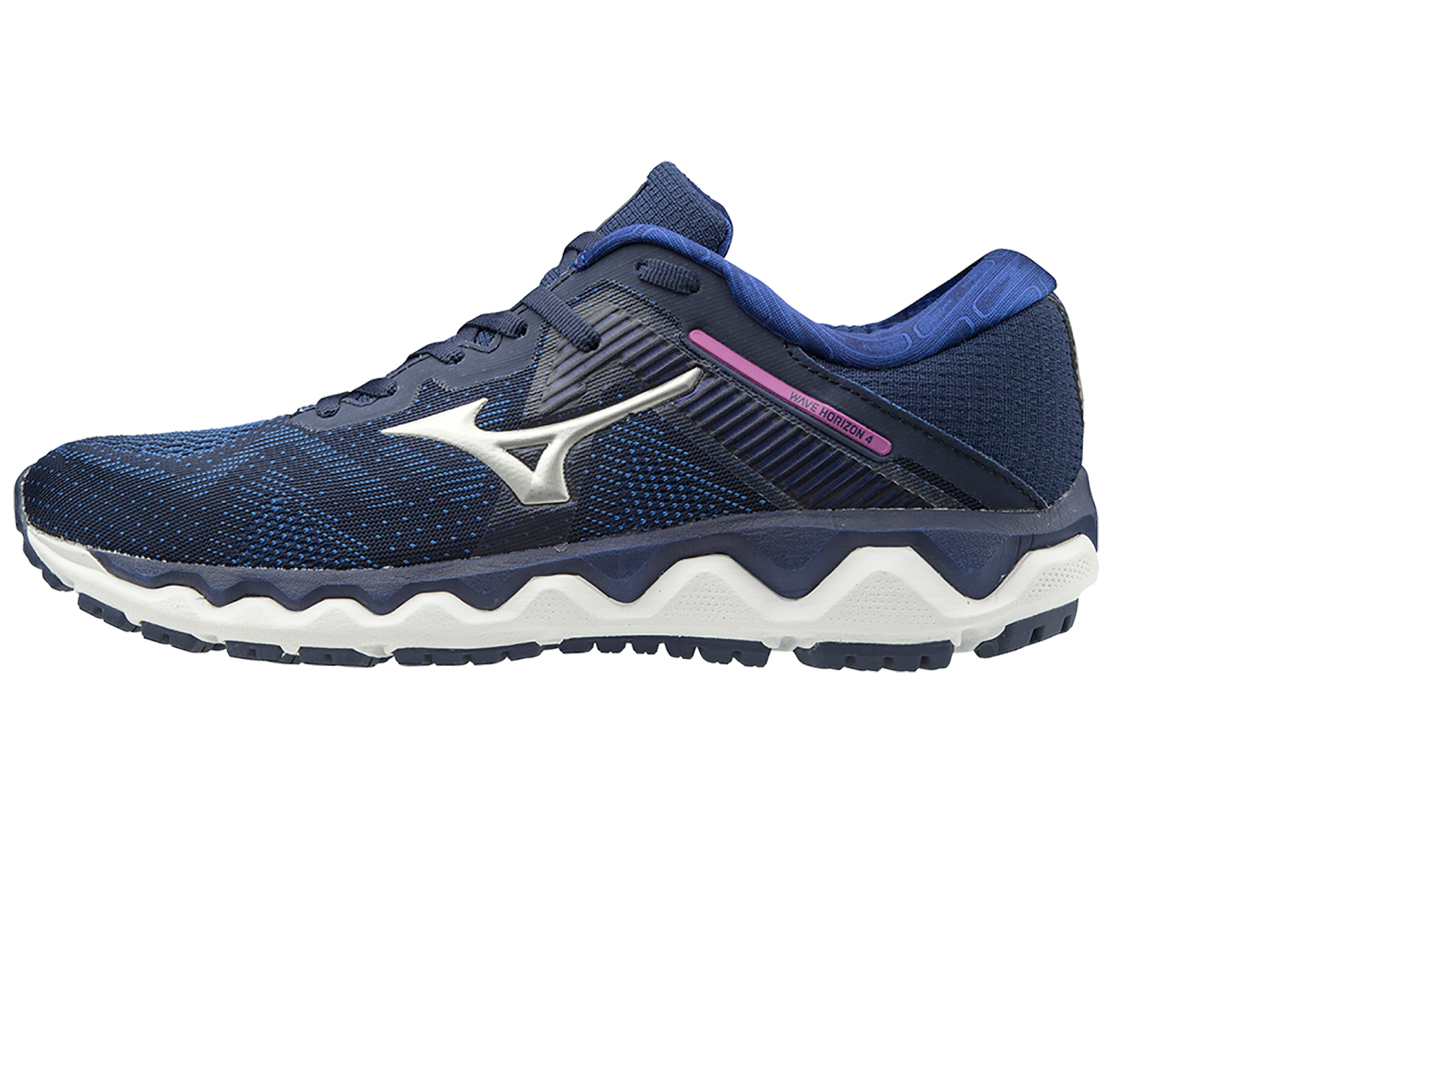 Mizuno Wave Horizon 4 (Women's)